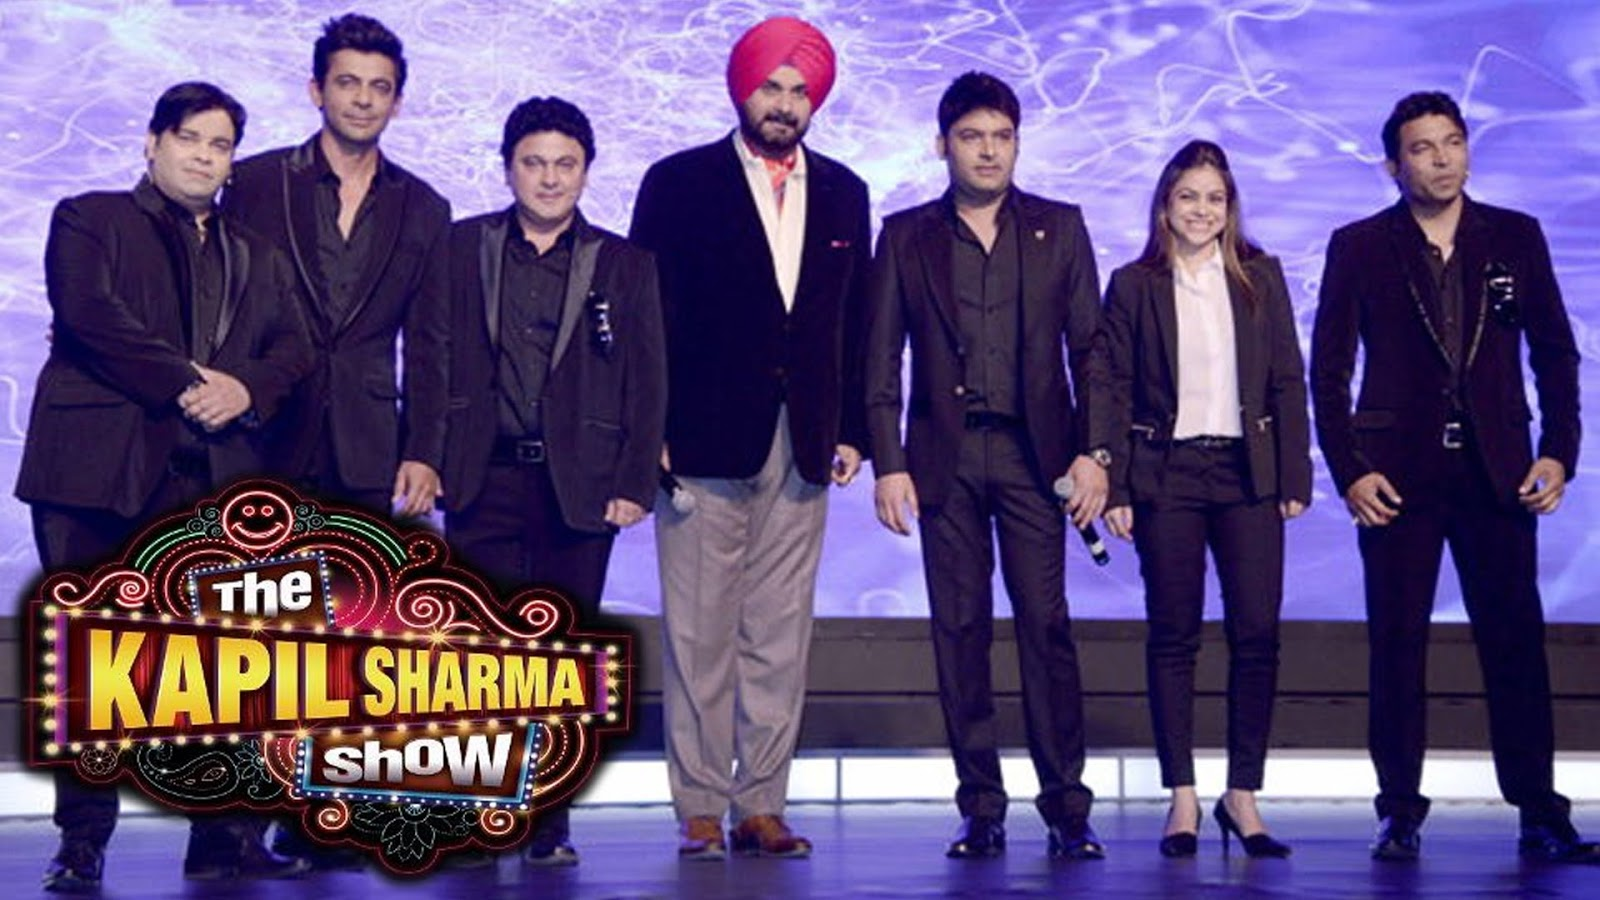 The Kapil Sharma Show ~ THE KAPIL SHARMA SHOW